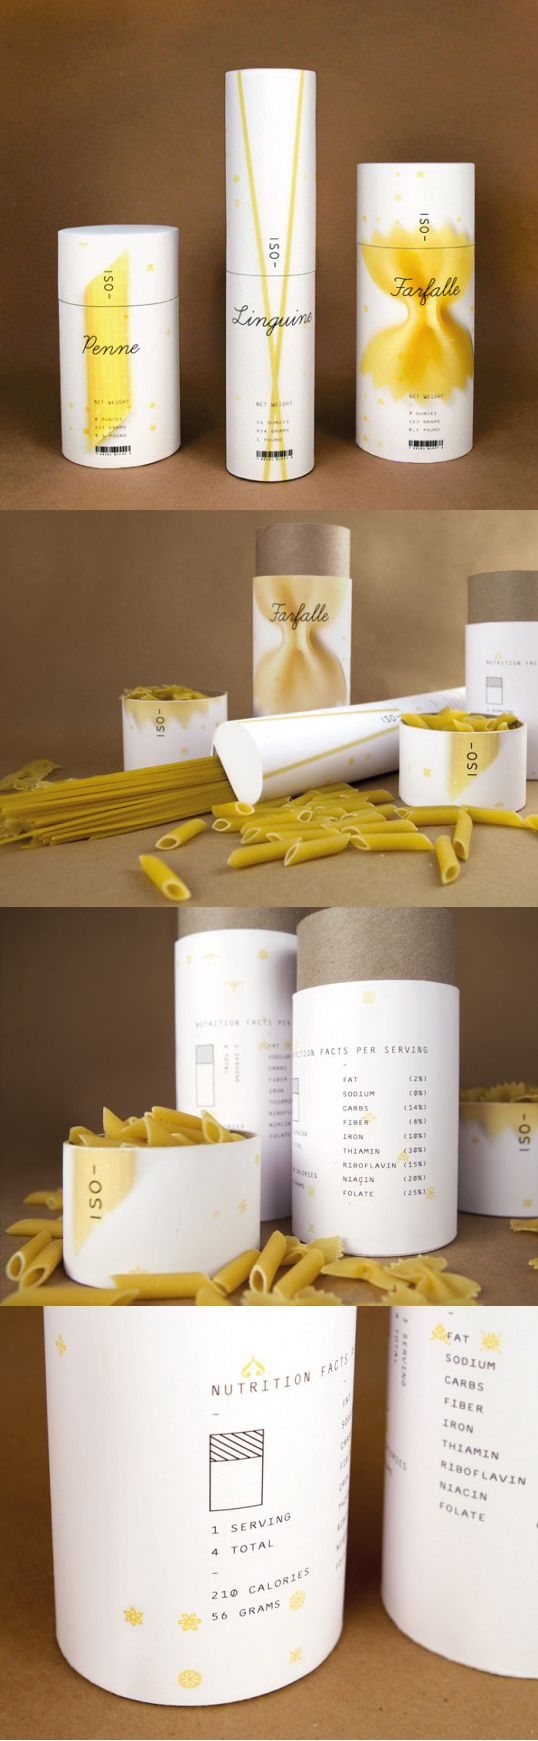 Unique Packaging Design on the Internet, ISO Pasta #packaging #packagingdesign #pasta